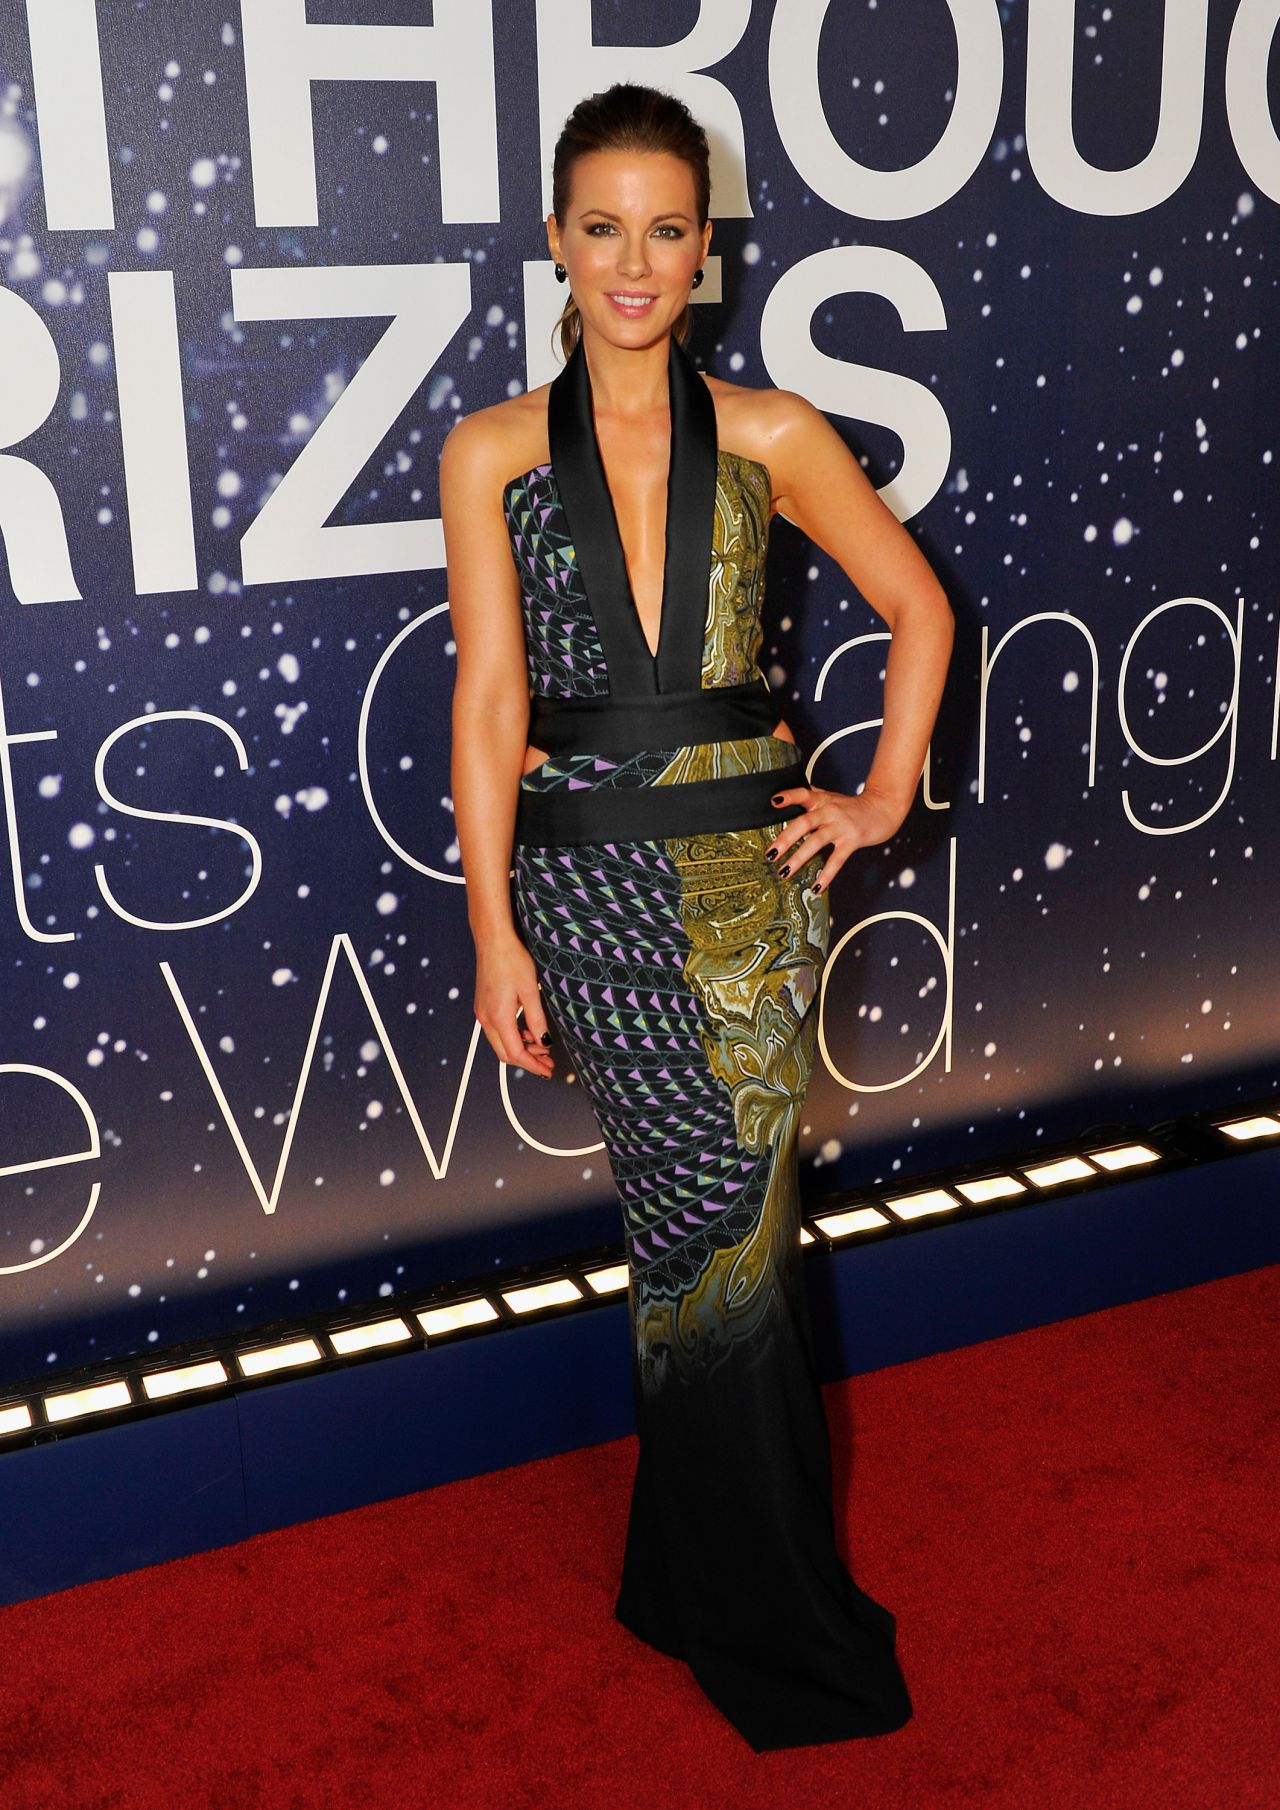 kate-beckinsale-2014-breakthrough-prize-awards-ceremony-in-mountain-view_3